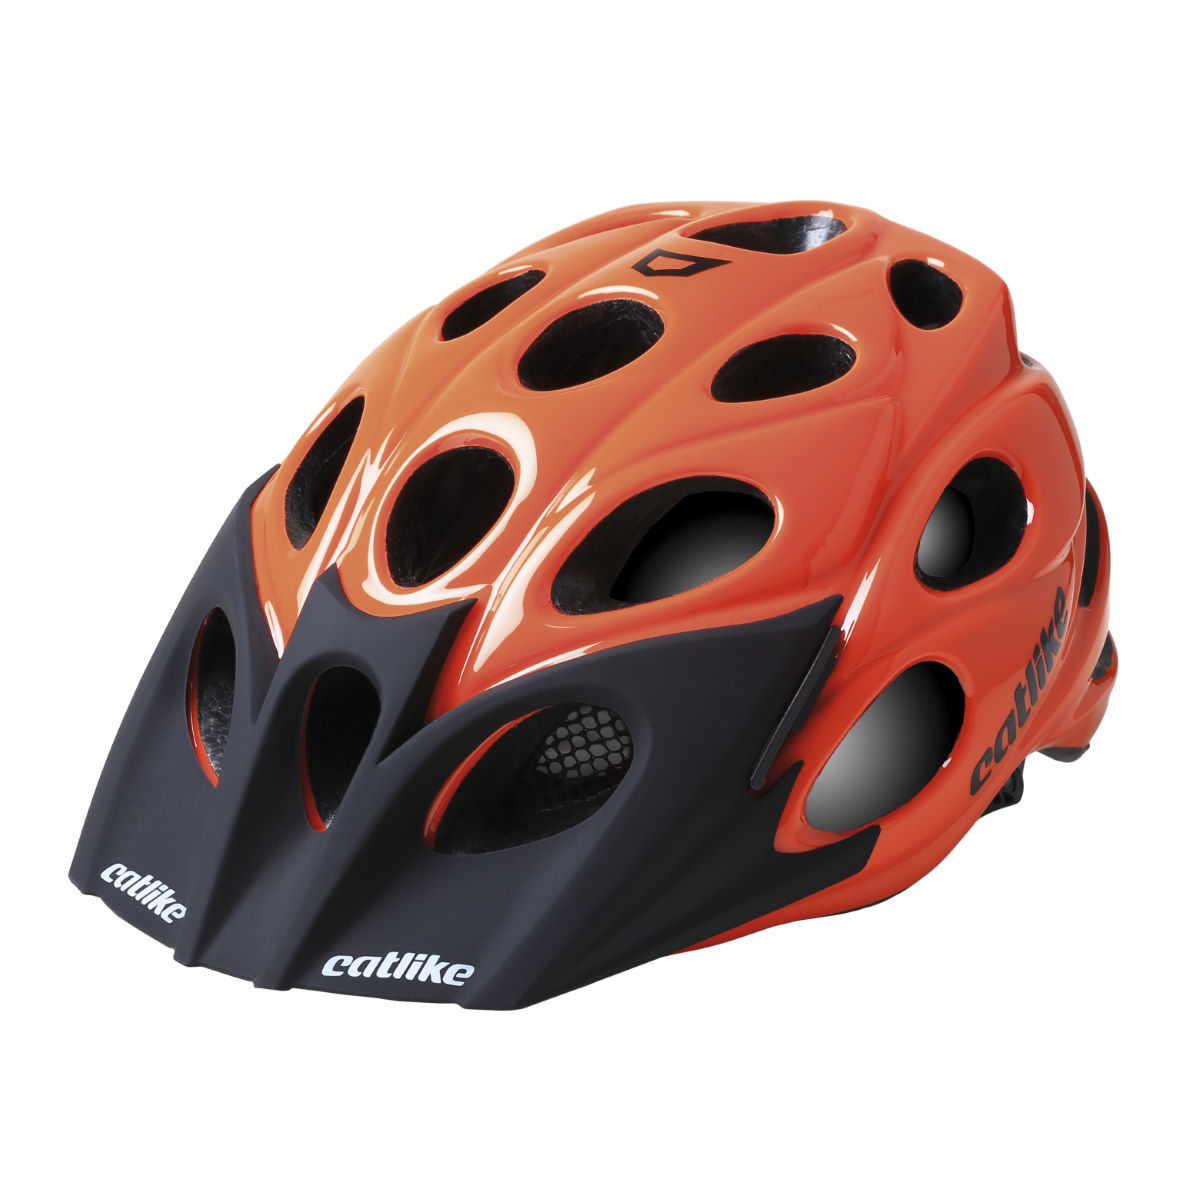 Catlike Leaf MTB  Helmet - Lowest price for Fluo Yellow only.